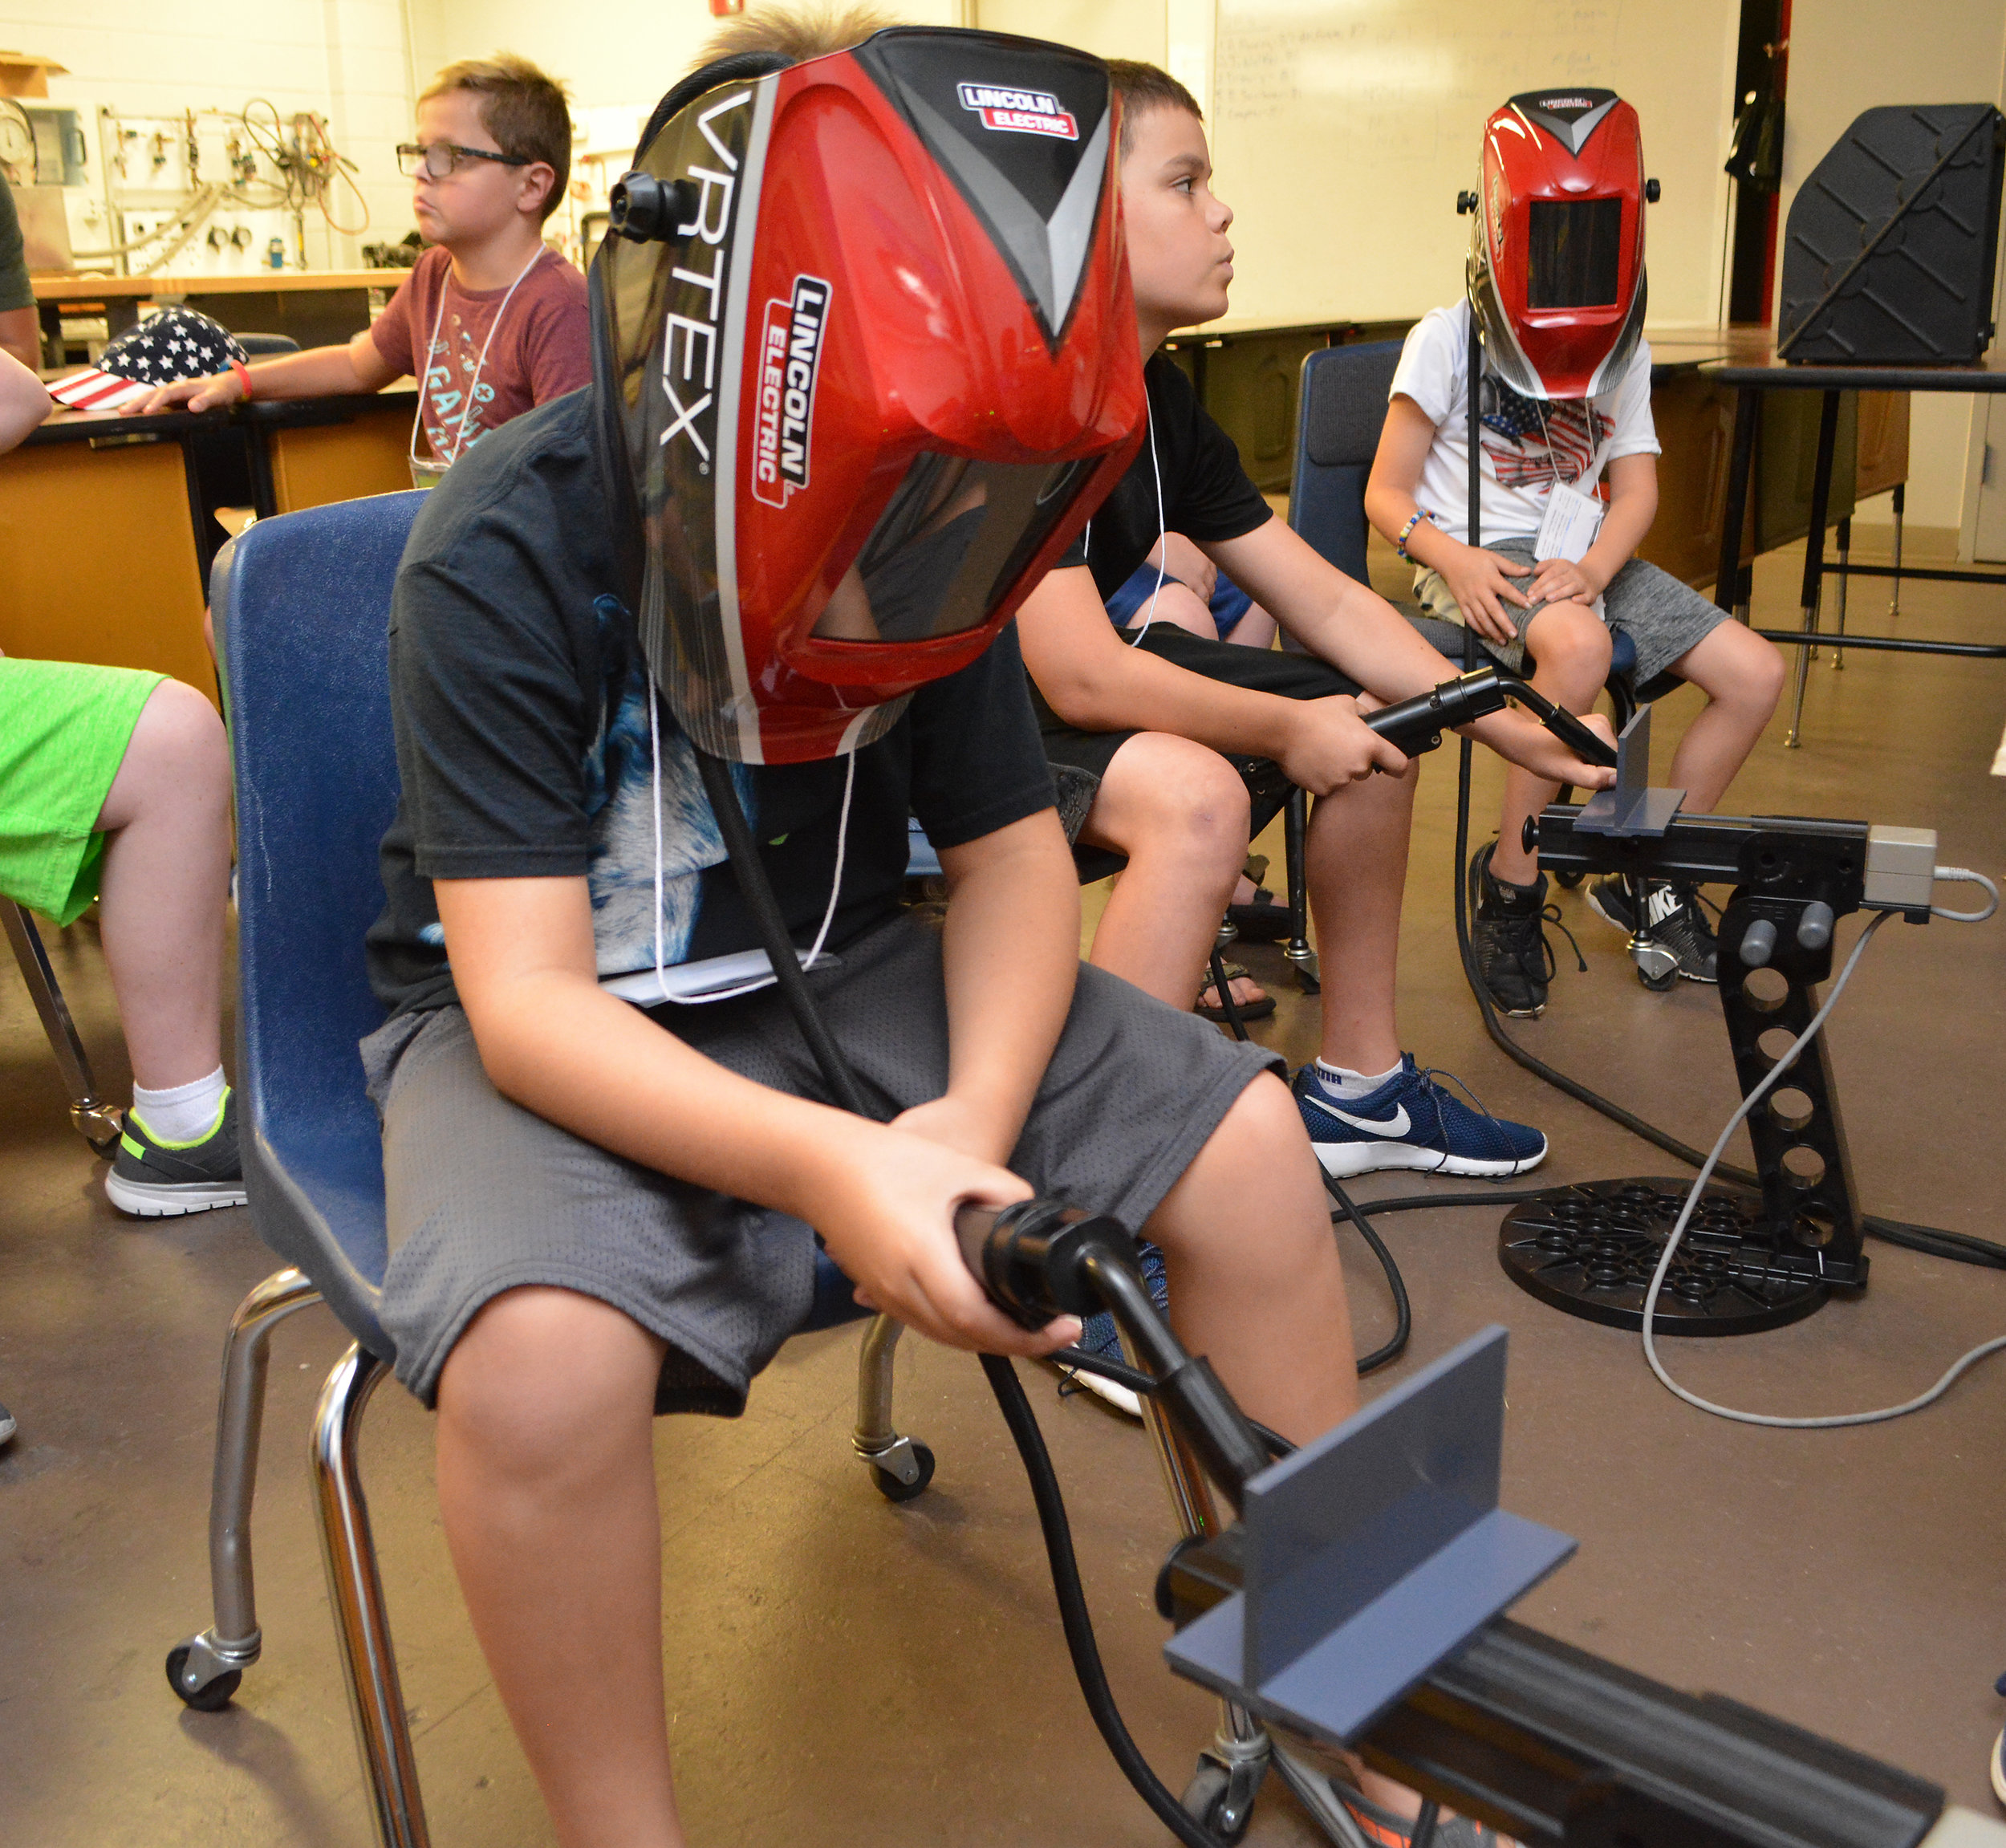 University of Arkansas Community College Batesville Inside Engineering Camp participants weld on welding simulators.